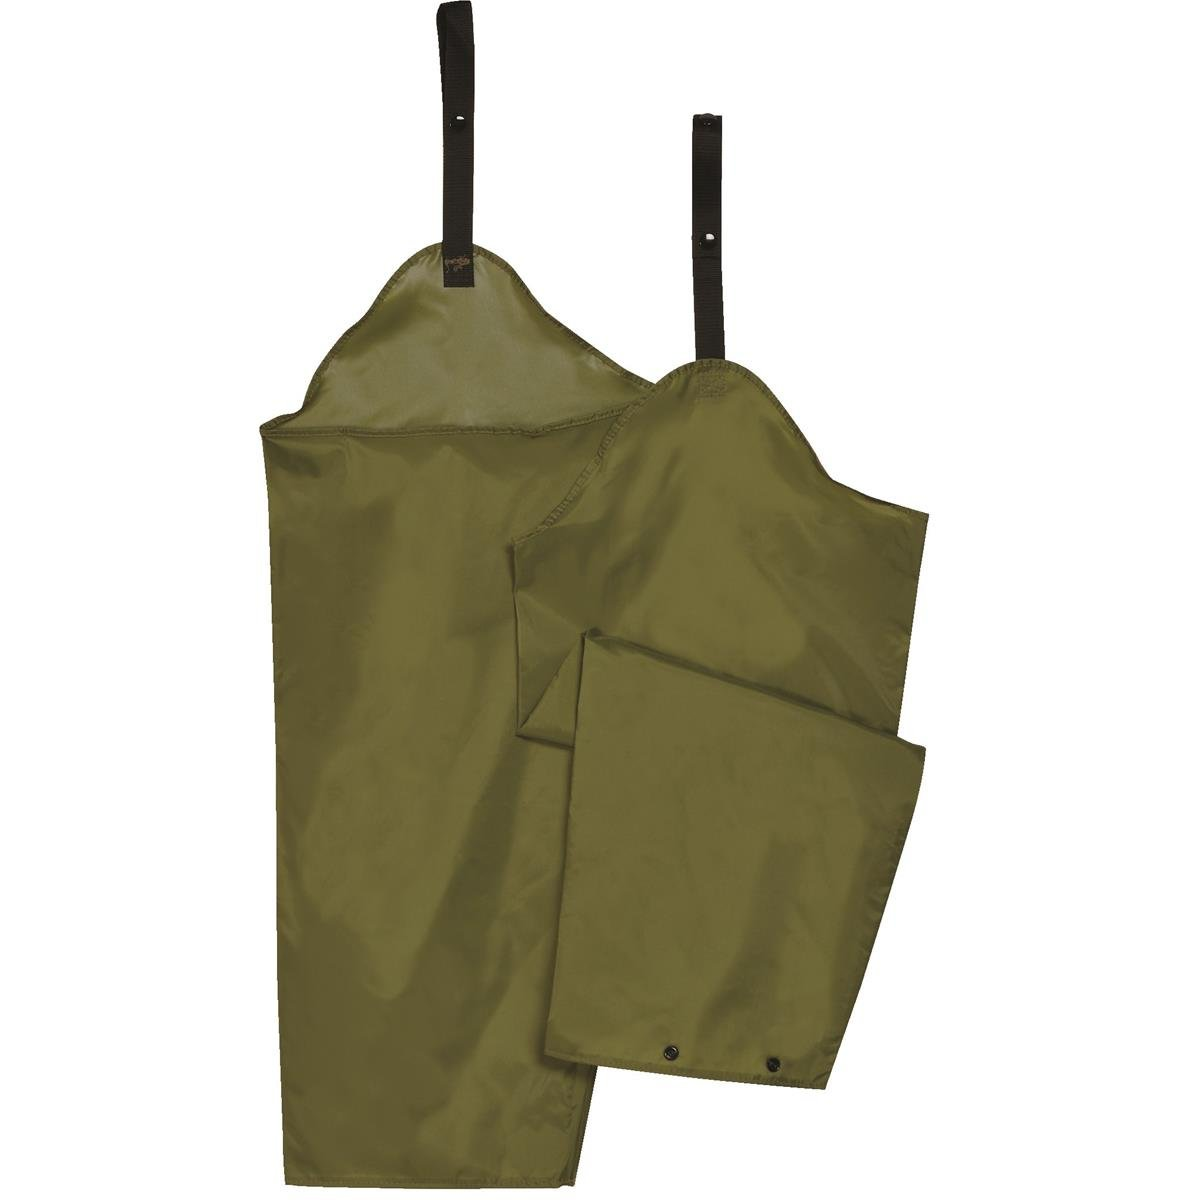 GEMPLER'S Adjustable Waterproof Lower Body Protective Spraying Safety Chaps, Olive Green, Lightweight, Chemical Resistant, One Size Fits All – Protects from Class III and IV pesticides. GEMPLER'S